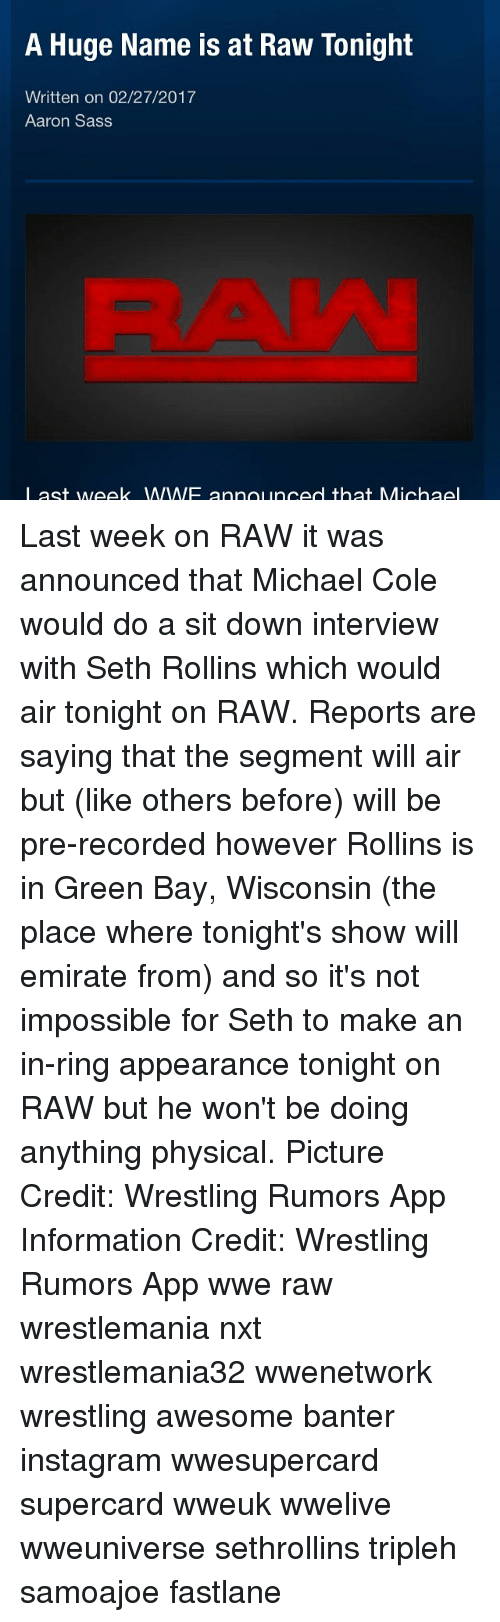 michael cole: A Huge Name is at Raw Tonight  Written on 02/27/2017  Aaron Sass  I ast week WIWIF announced that Michael Last week on RAW it was announced that Michael Cole would do a sit down interview with Seth Rollins which would air tonight on RAW. Reports are saying that the segment will air but (like others before) will be pre-recorded however Rollins is in Green Bay, Wisconsin (the place where tonight's show will emirate from) and so it's not impossible for Seth to make an in-ring appearance tonight on RAW but he won't be doing anything physical. Picture Credit: Wrestling Rumors App Information Credit: Wrestling Rumors App wwe raw wrestlemania nxt wrestlemania32 wwenetwork wrestling awesome banter instagram wwesupercard supercard wweuk wwelive wweuniverse sethrollins tripleh samoajoe fastlane